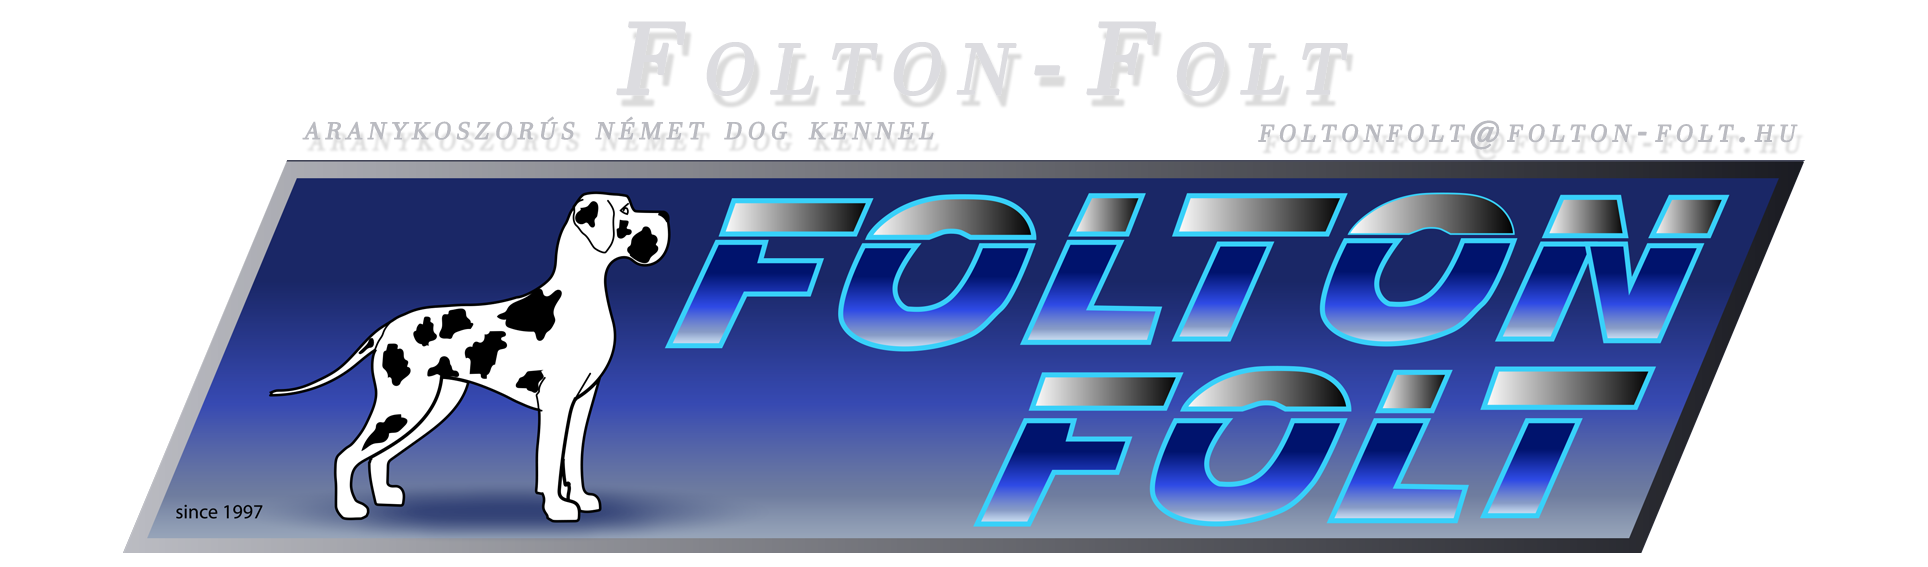 Folton Folt kennel